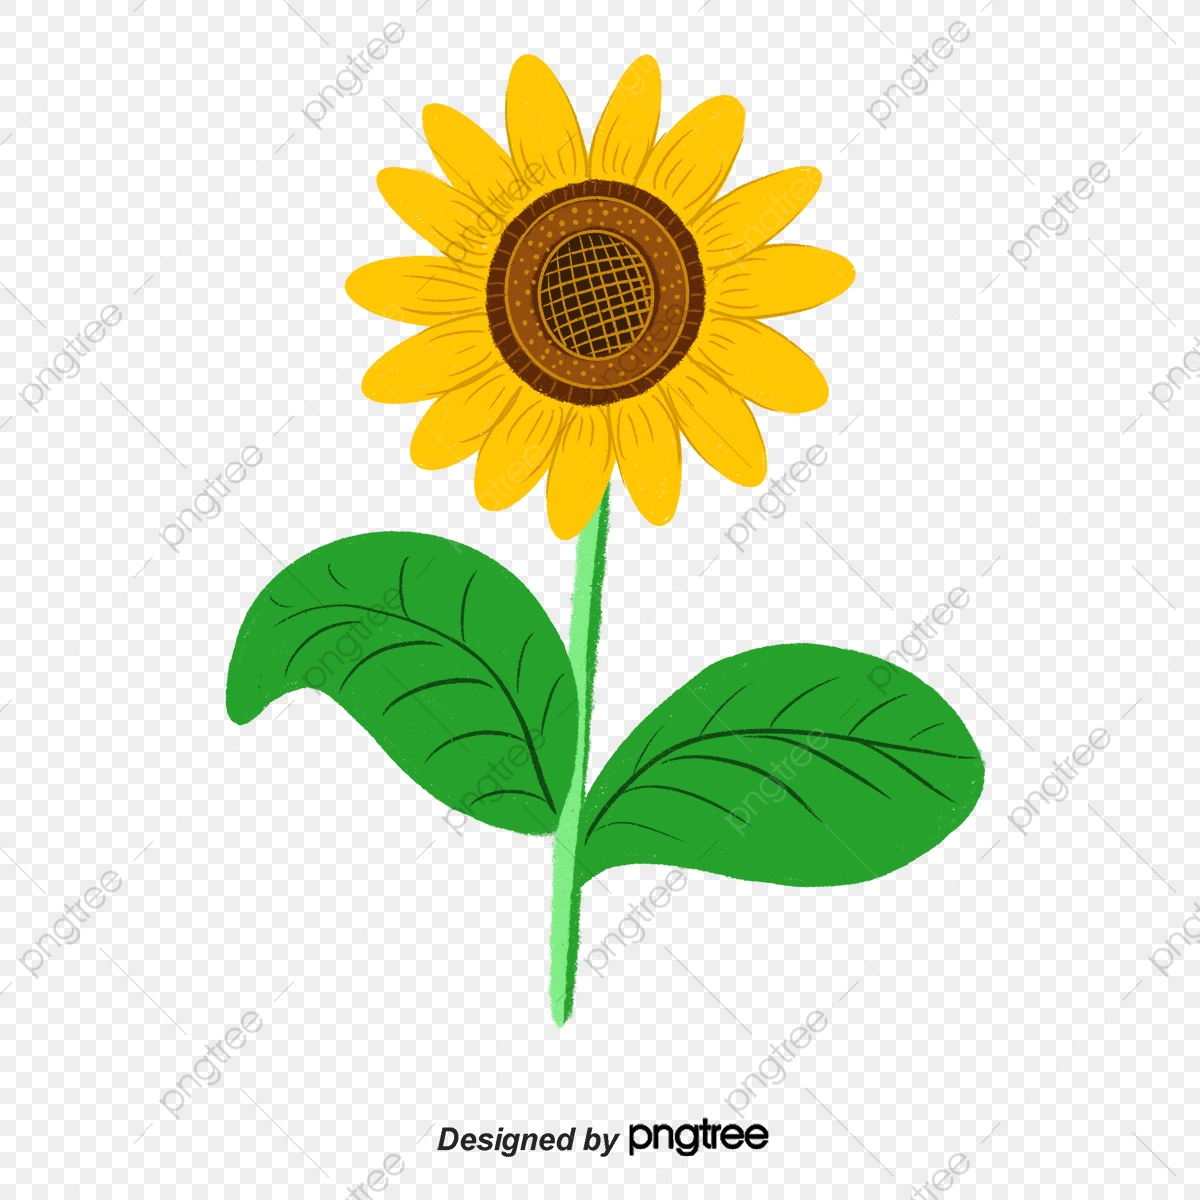 Colorful Cartoon Illustration Of Sunflower Elements Cartoon